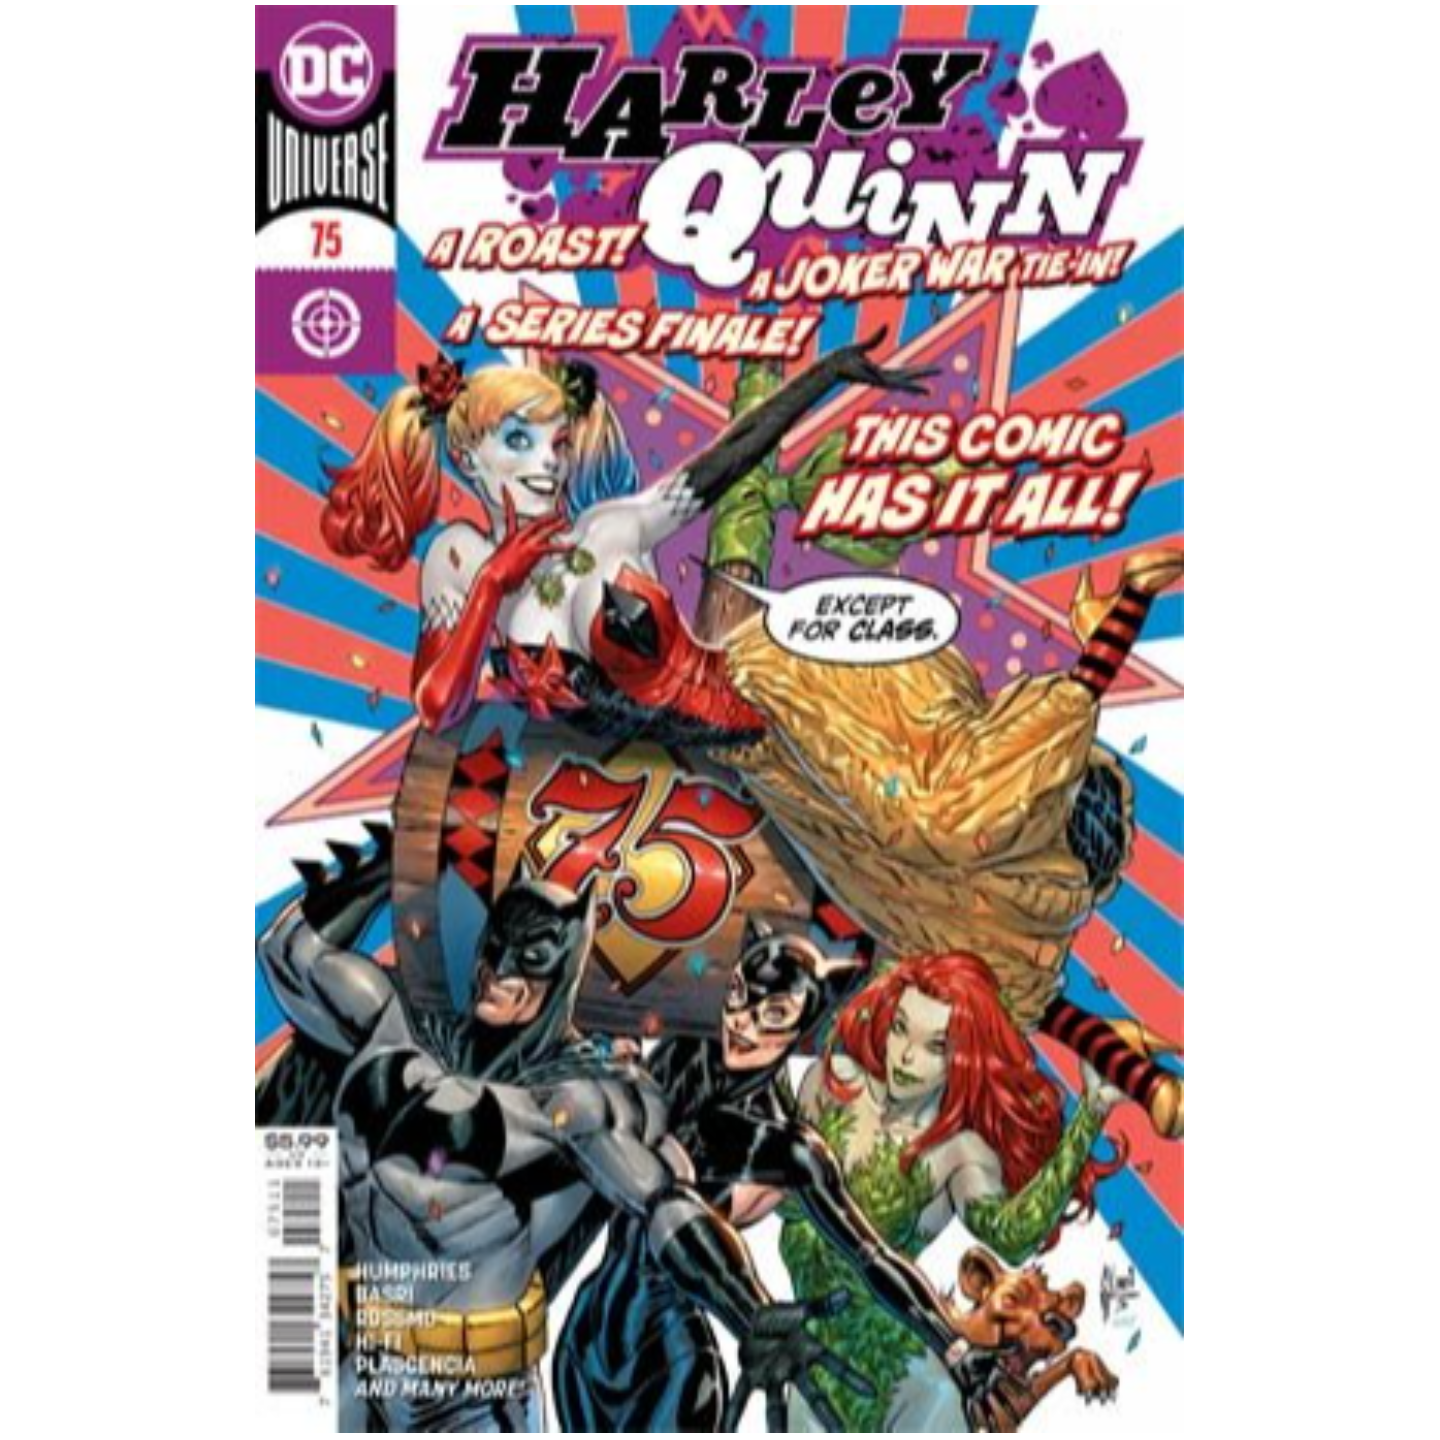 HARLEY QUINN #75 (NOTE PRICE)